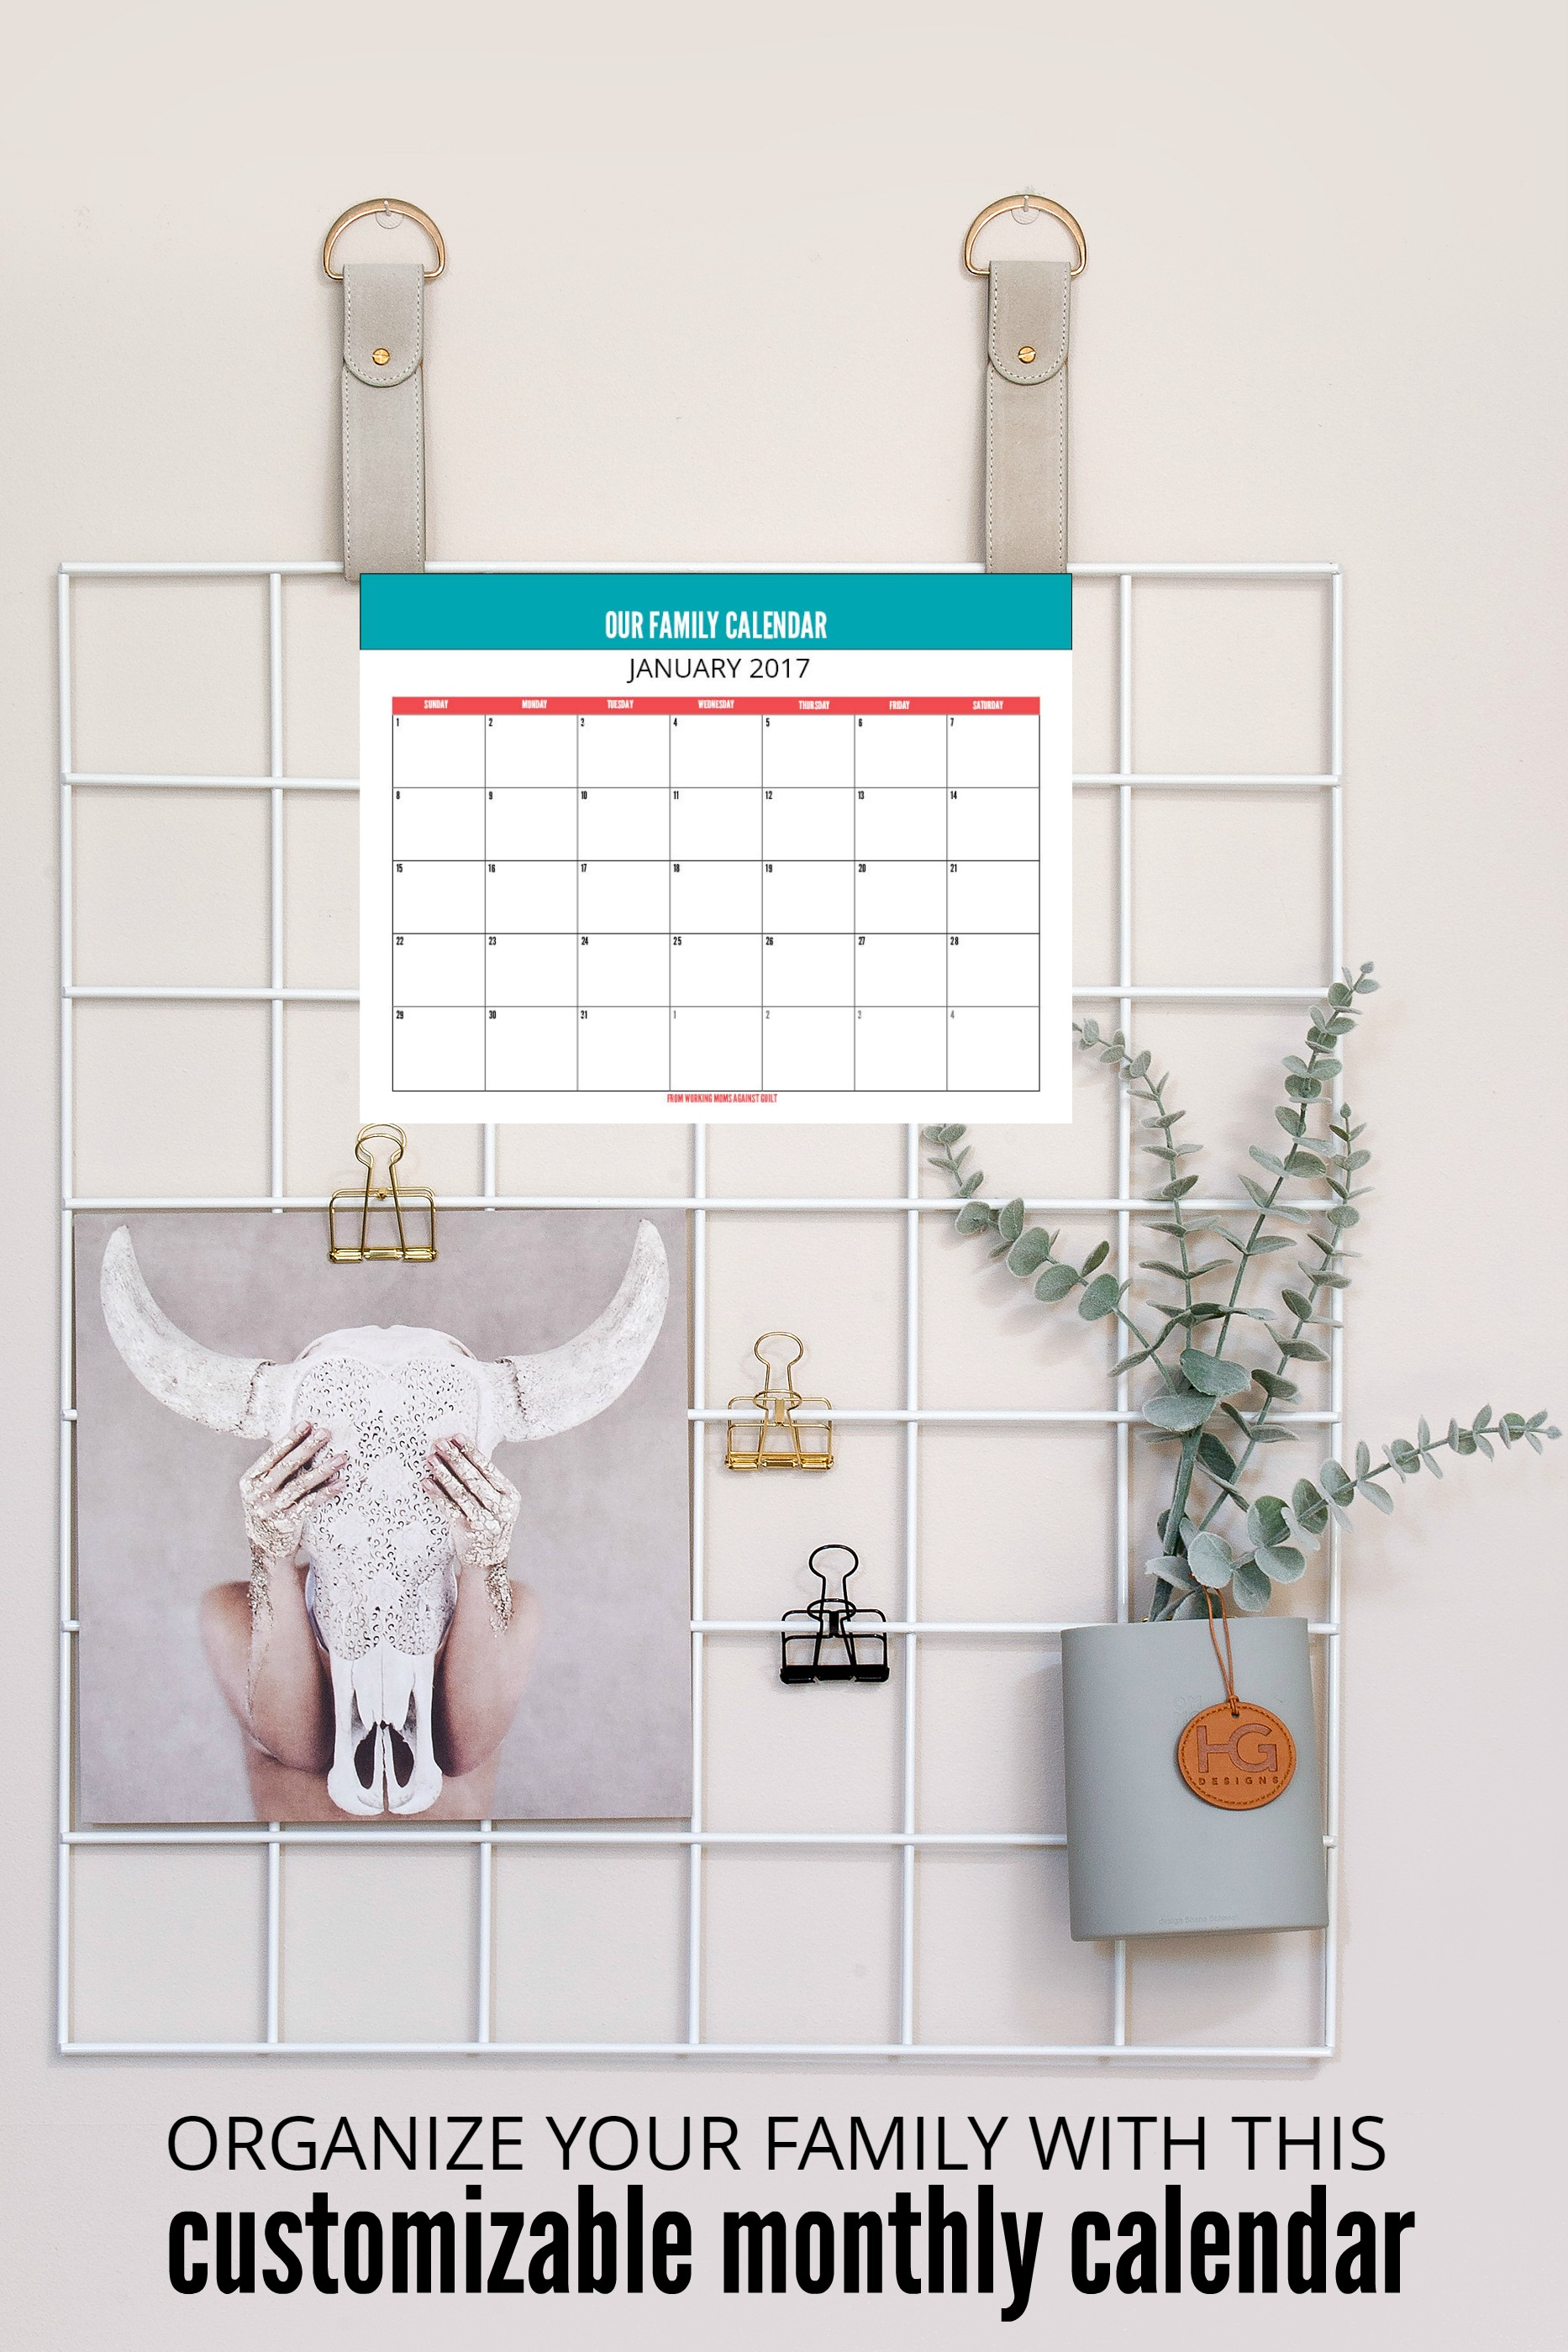 Crazy family schedule? Tame it with this printable editable monthly calendar. It's like a central hub where everyone can see what's coming up at a glance.